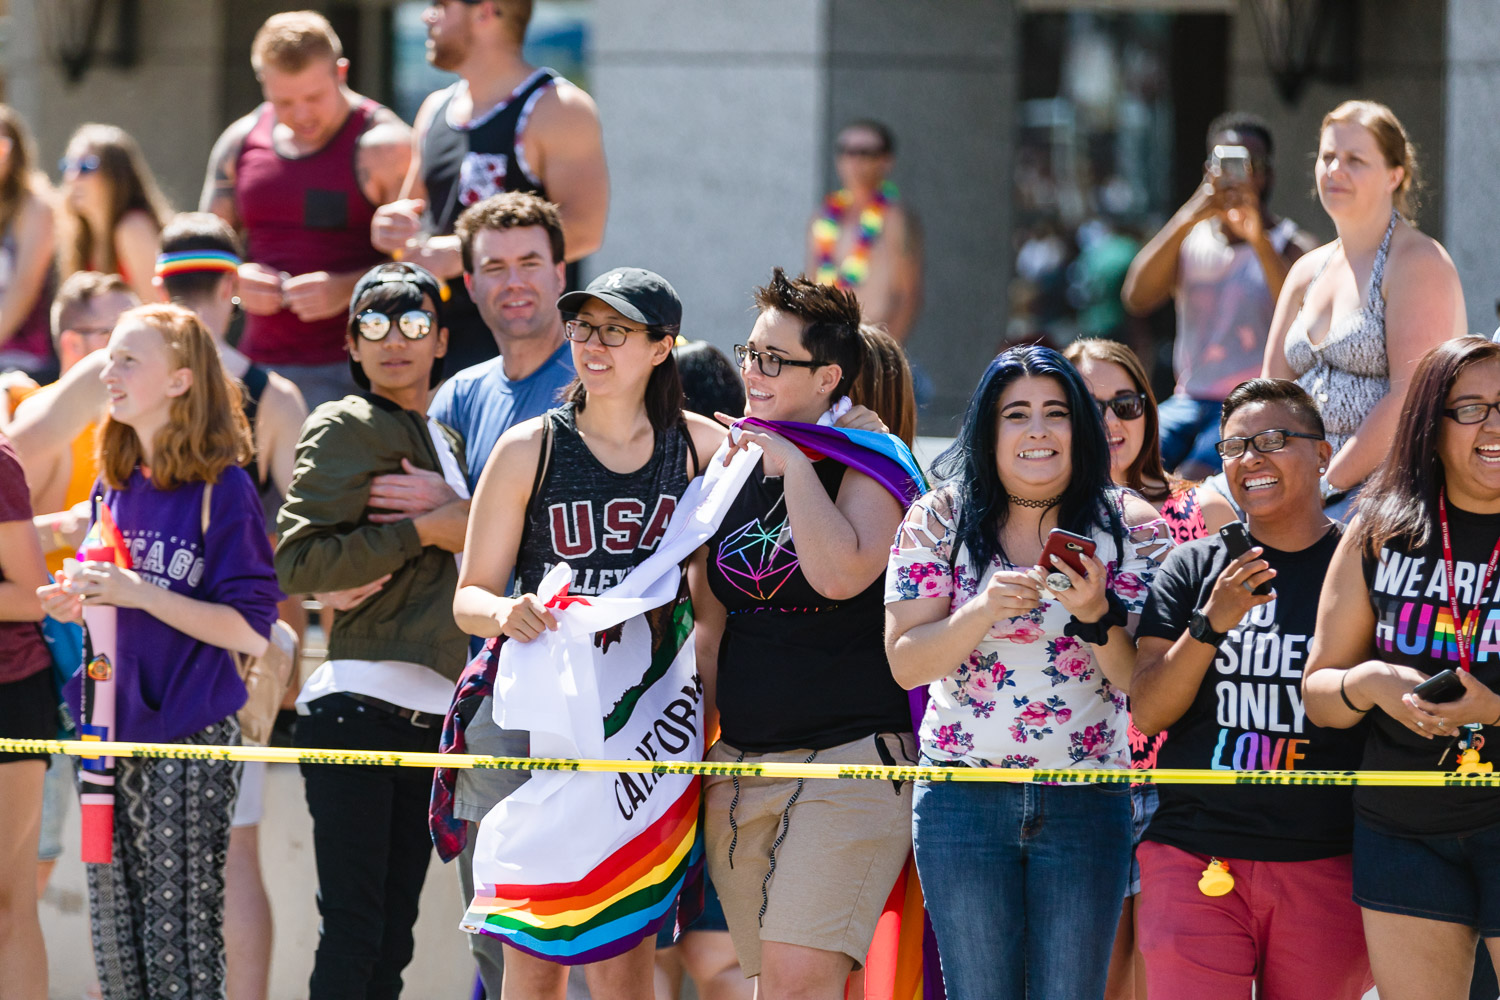 Parade attendees hold the California flag as a show of support for SLC Pride. Photo: Logan Sorenson | Lmsorenson.net